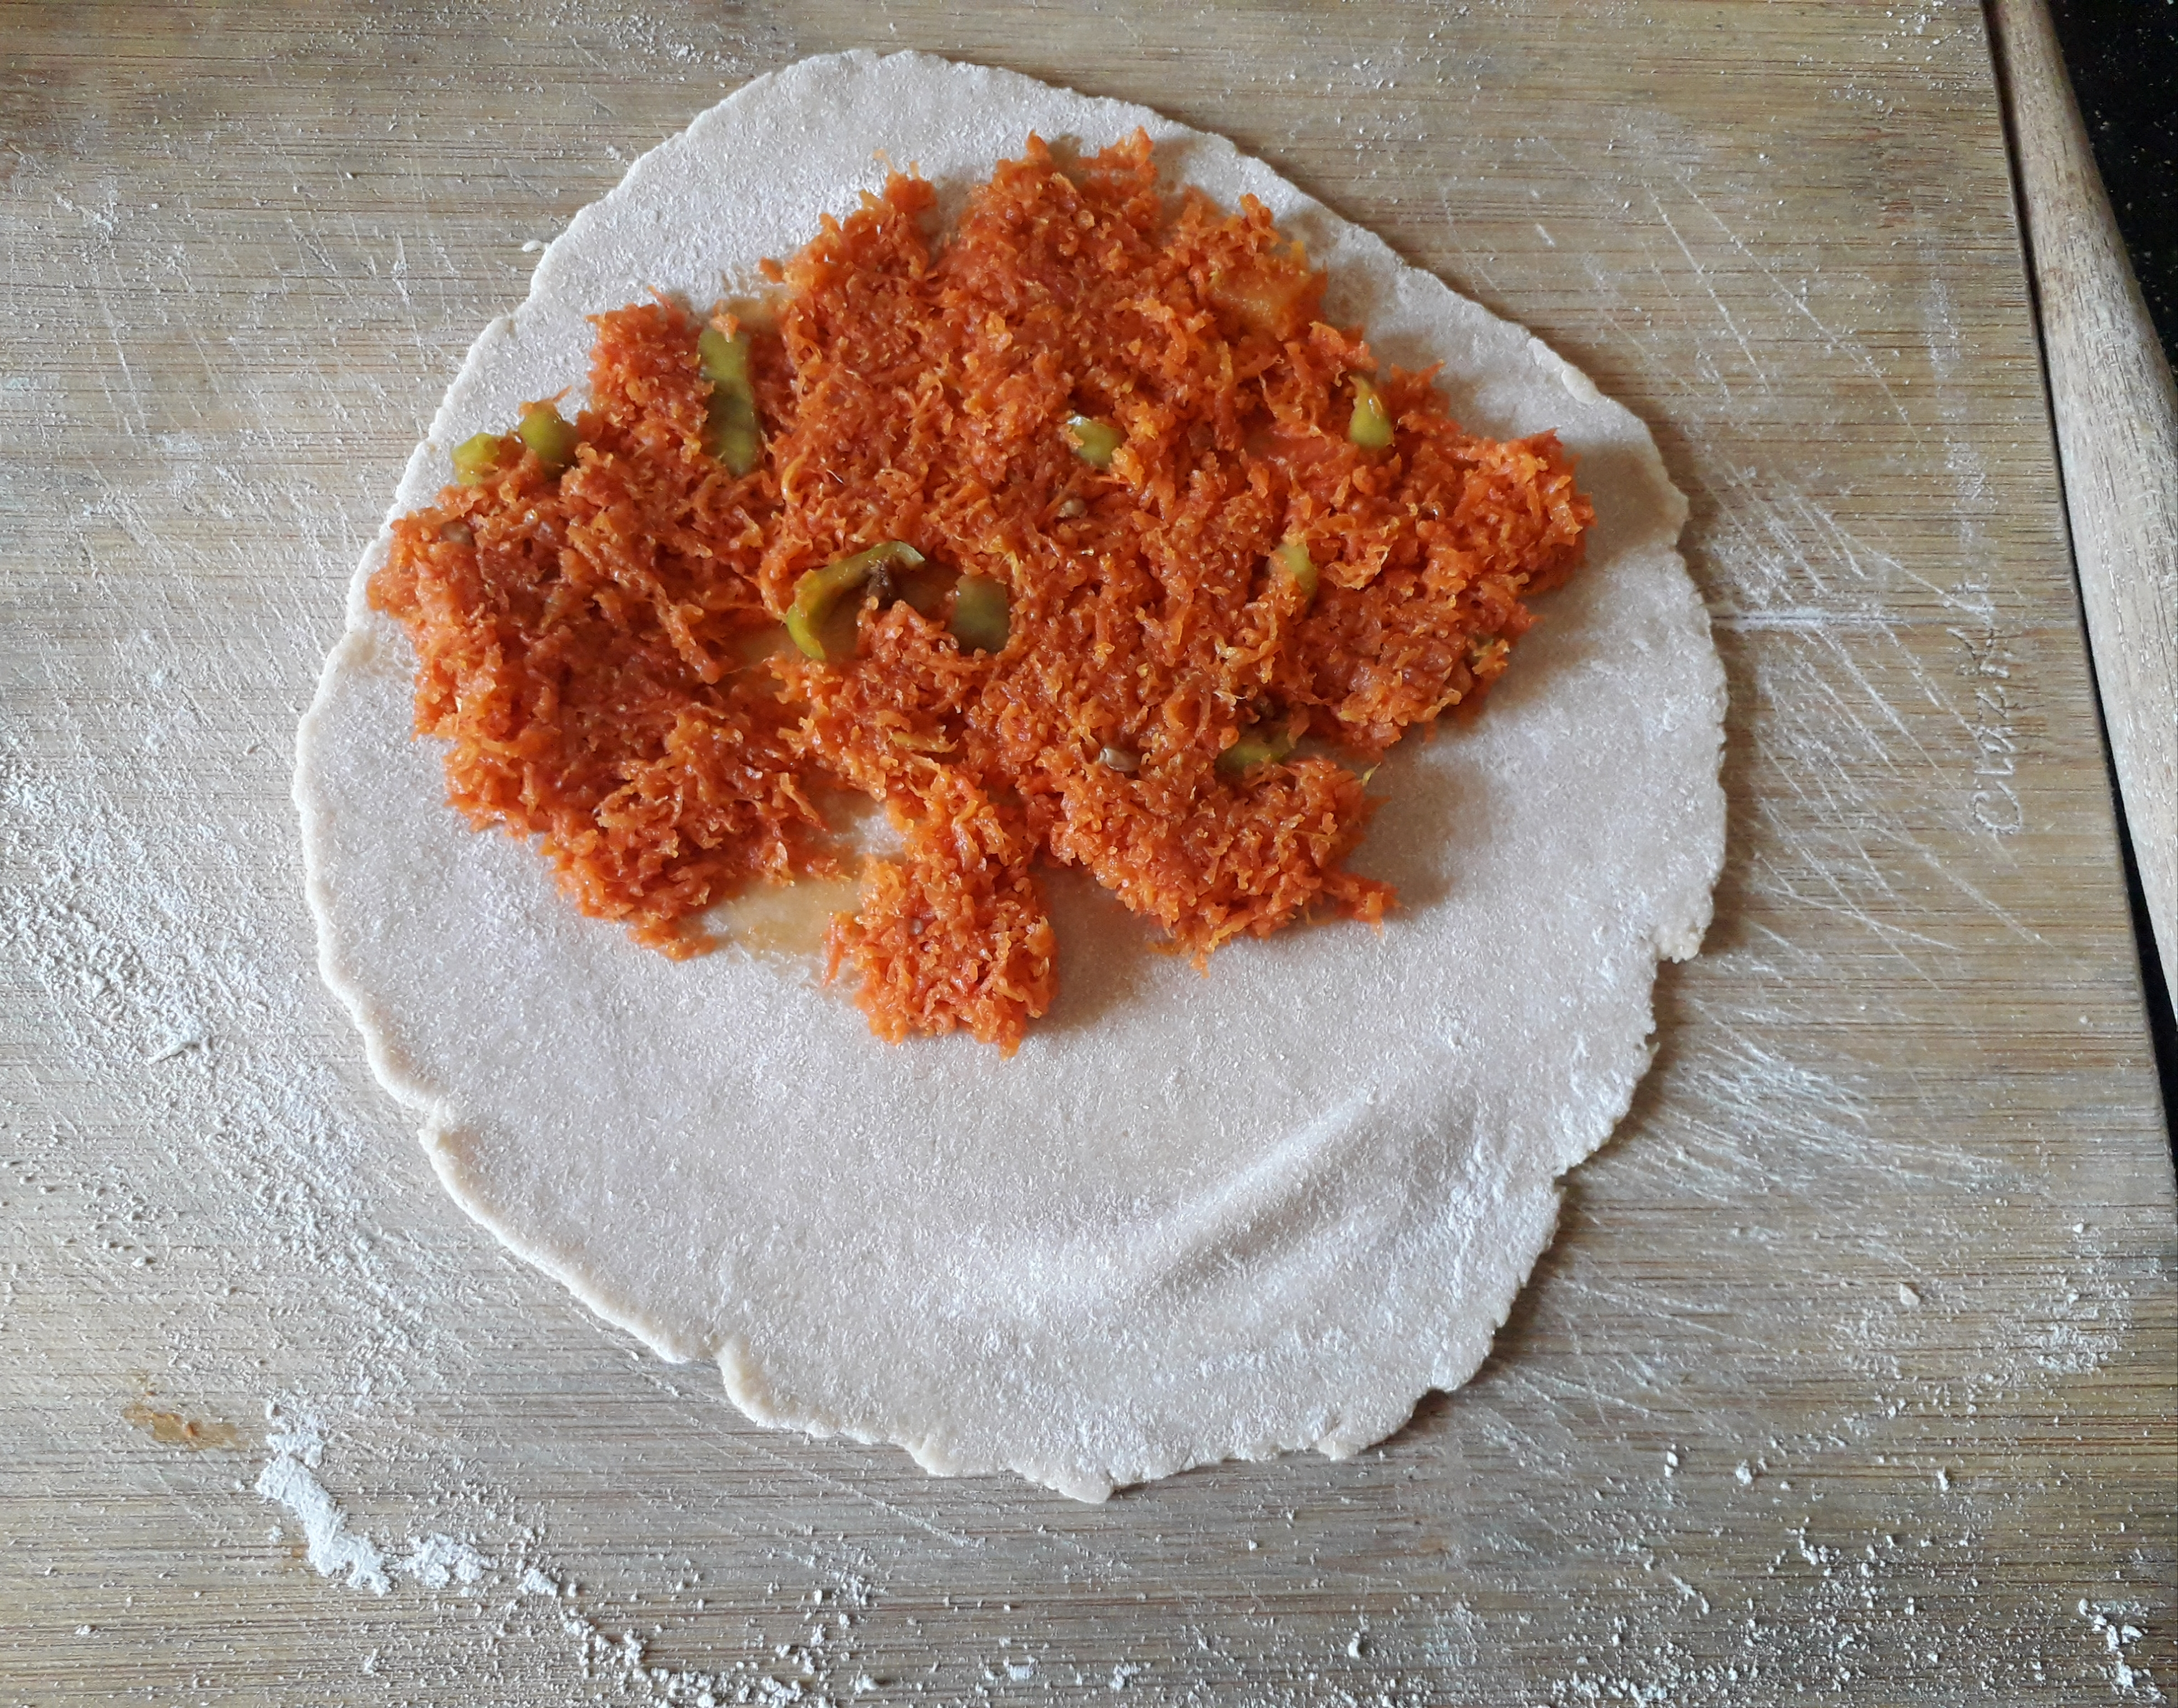 The quantity of carrot mix for a paratha